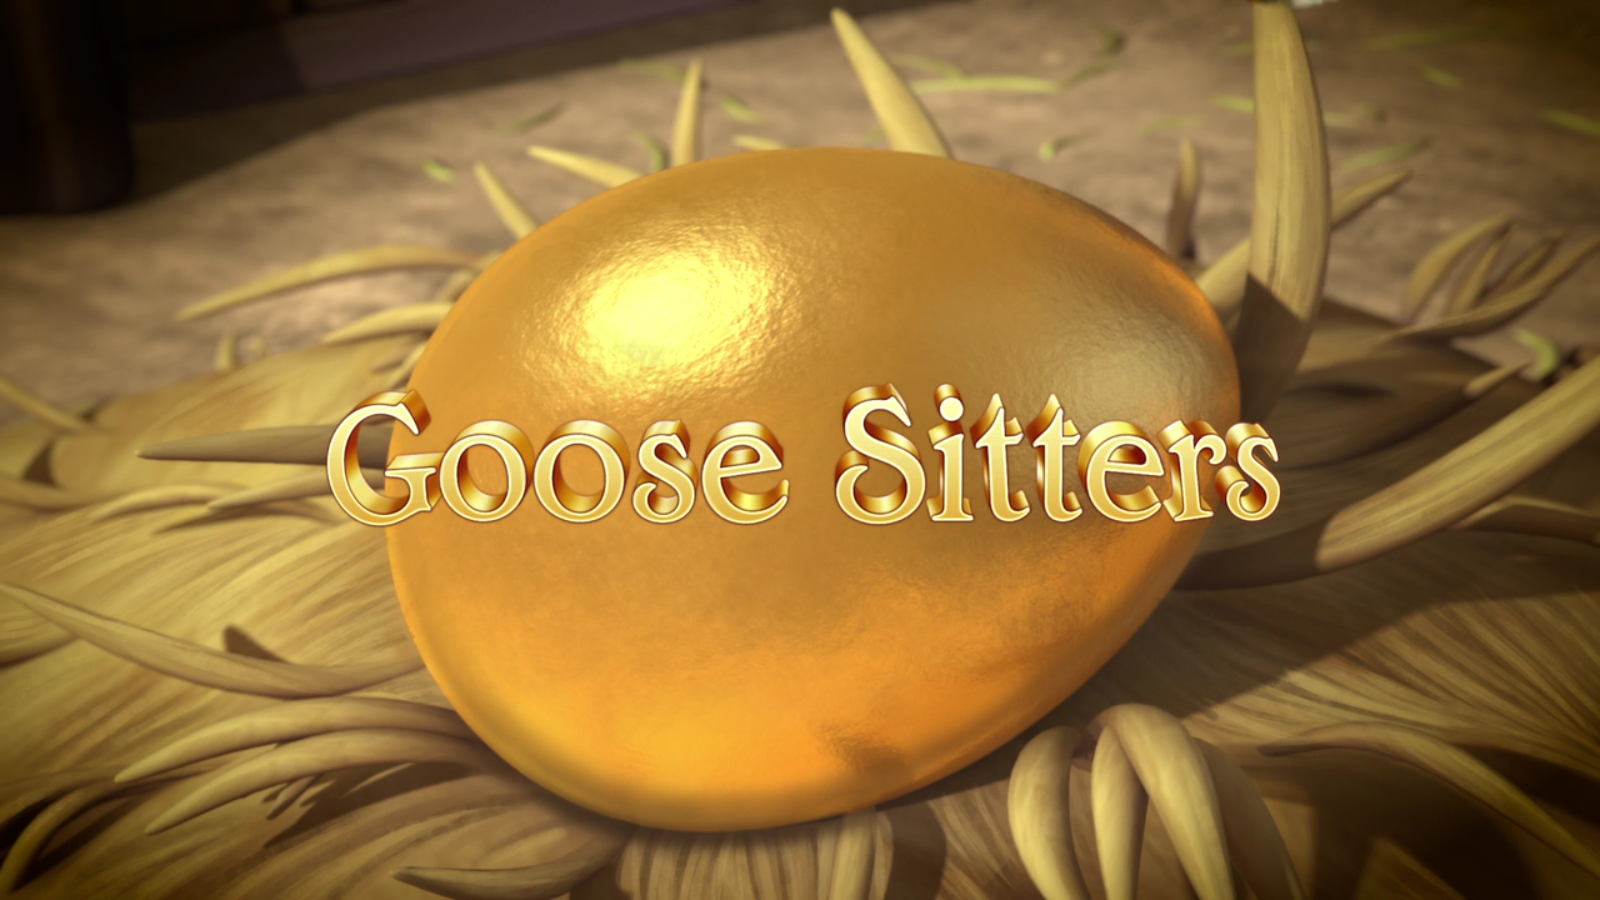 Goose Sitters